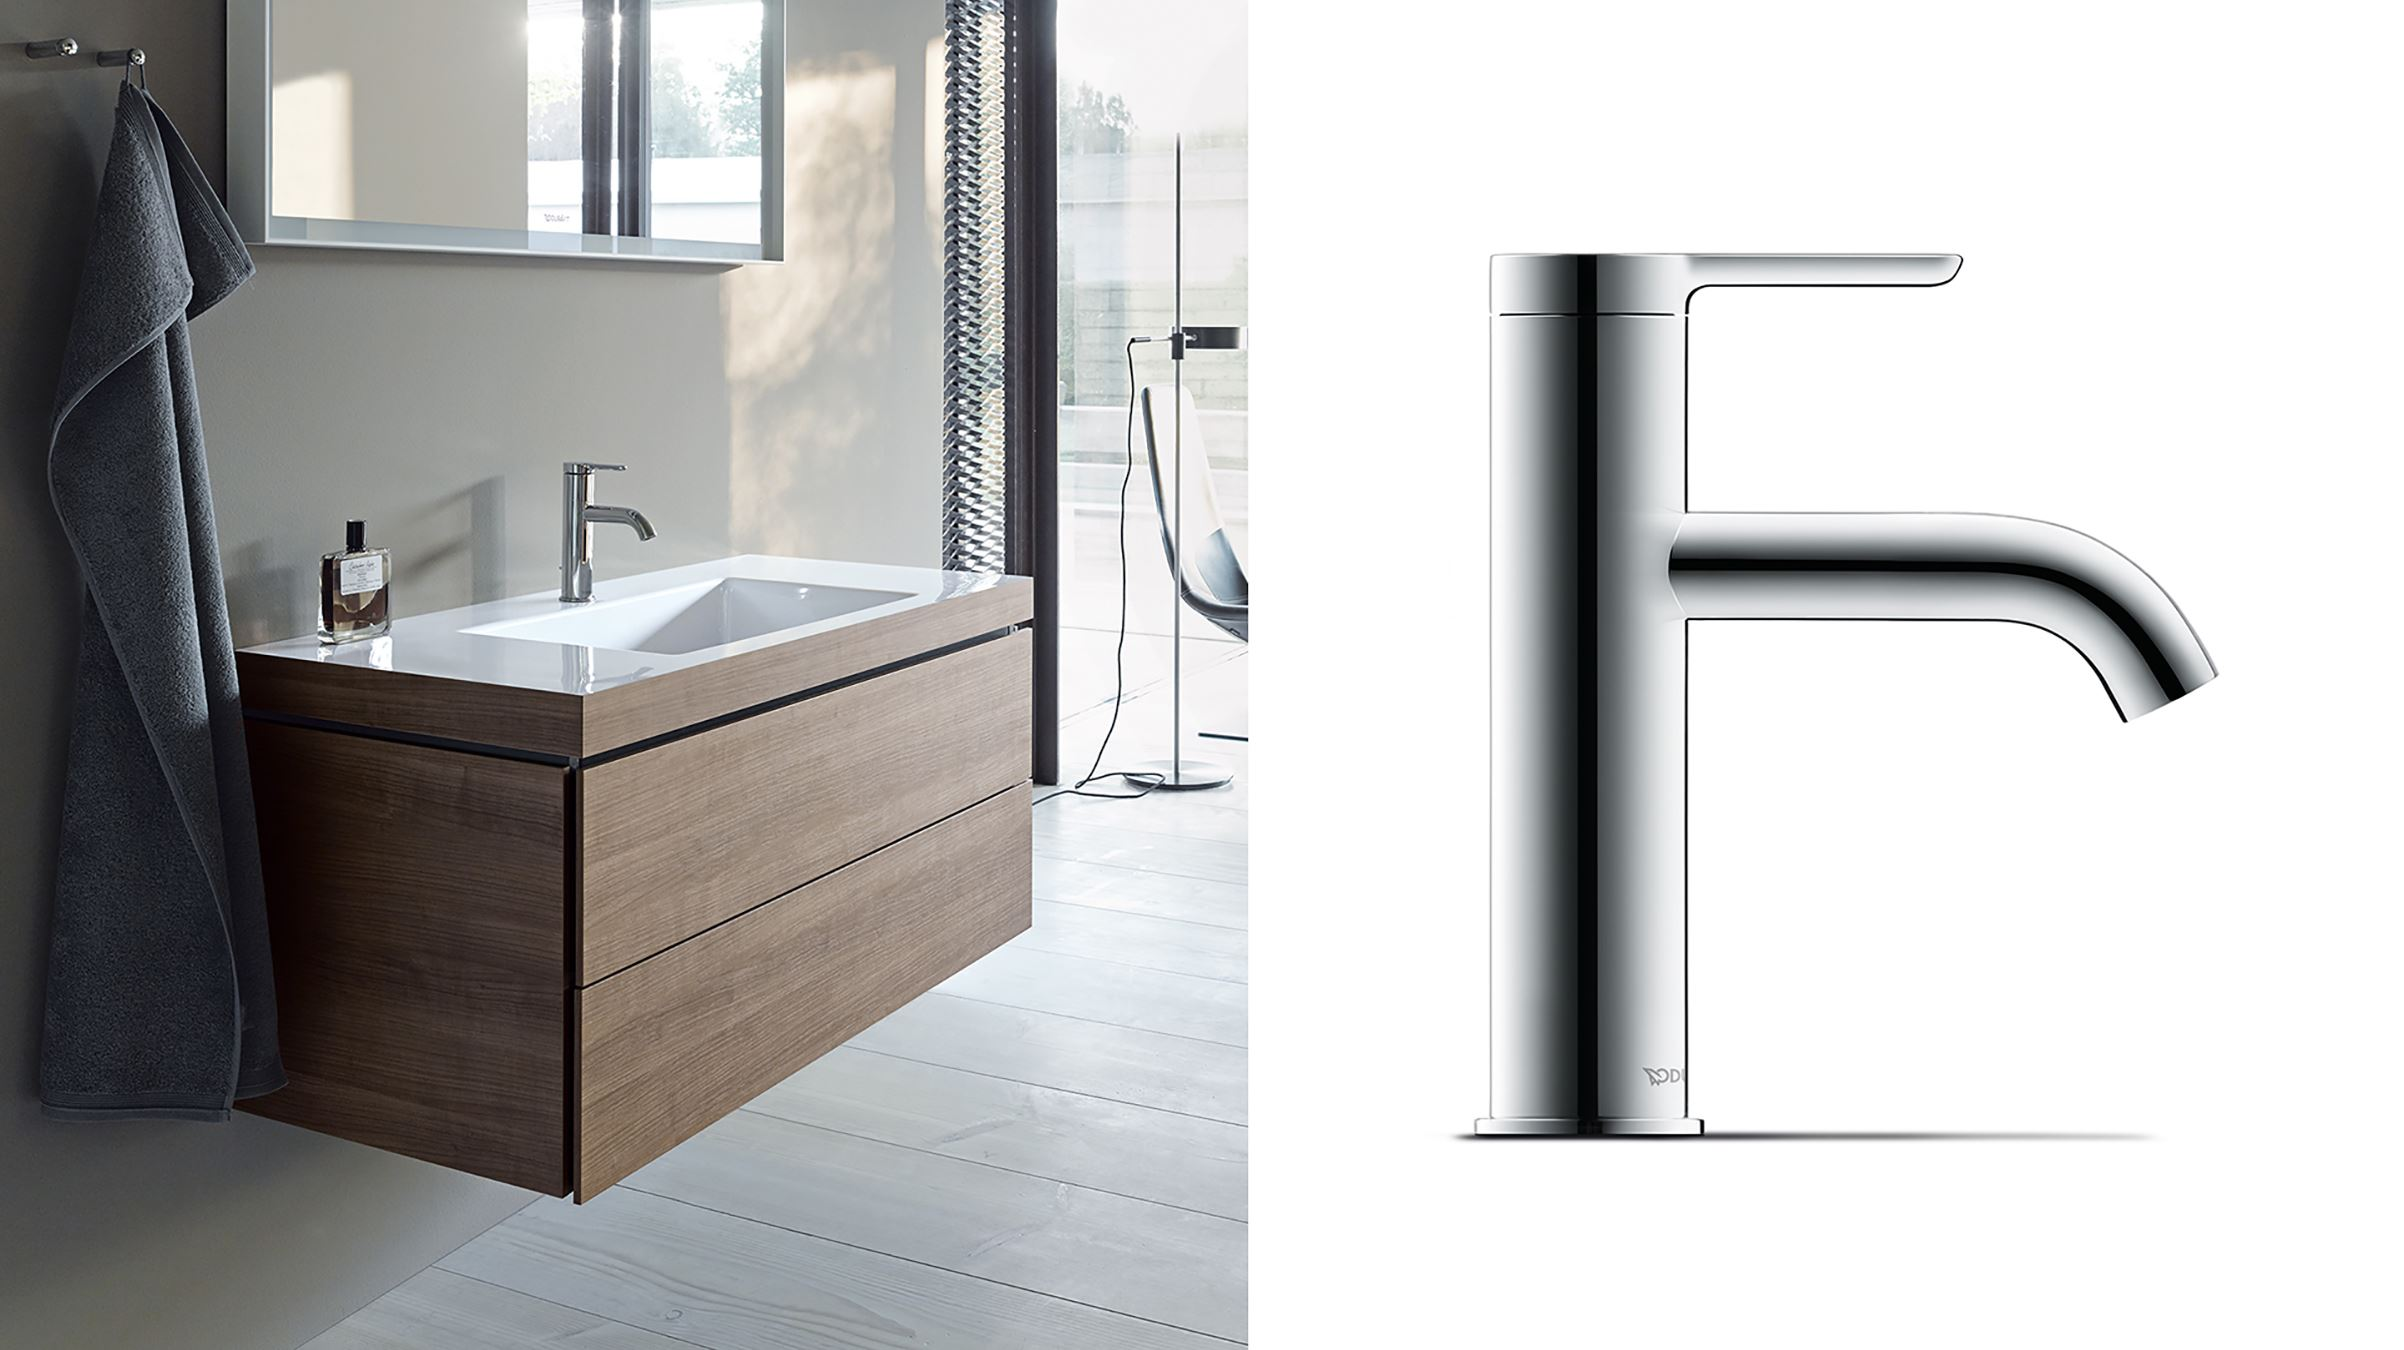 C1-by-Kurt-Merki-Jr_Duravit_12.jpg